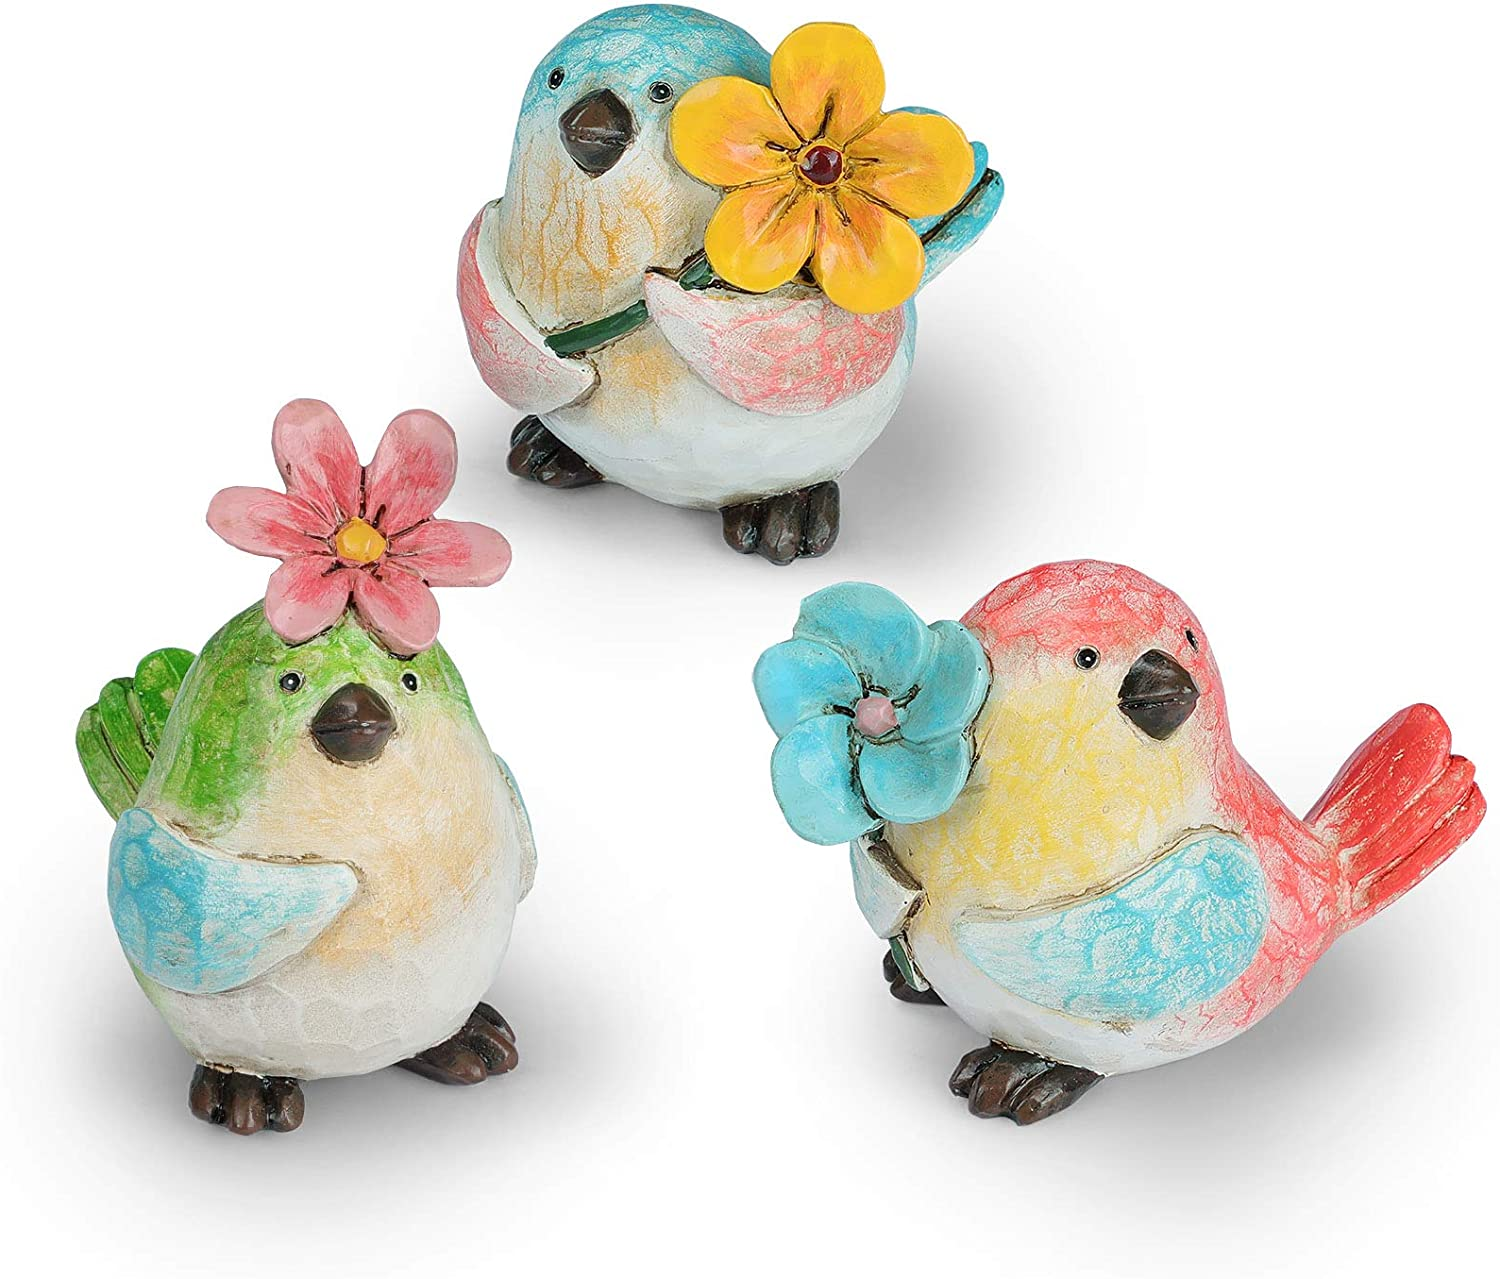 Garden Vivid Birds Figurines Decorations with Flower, Set of 3 Garden Statues, Resin Outdoor Spring Décor and Home Décor (4.25